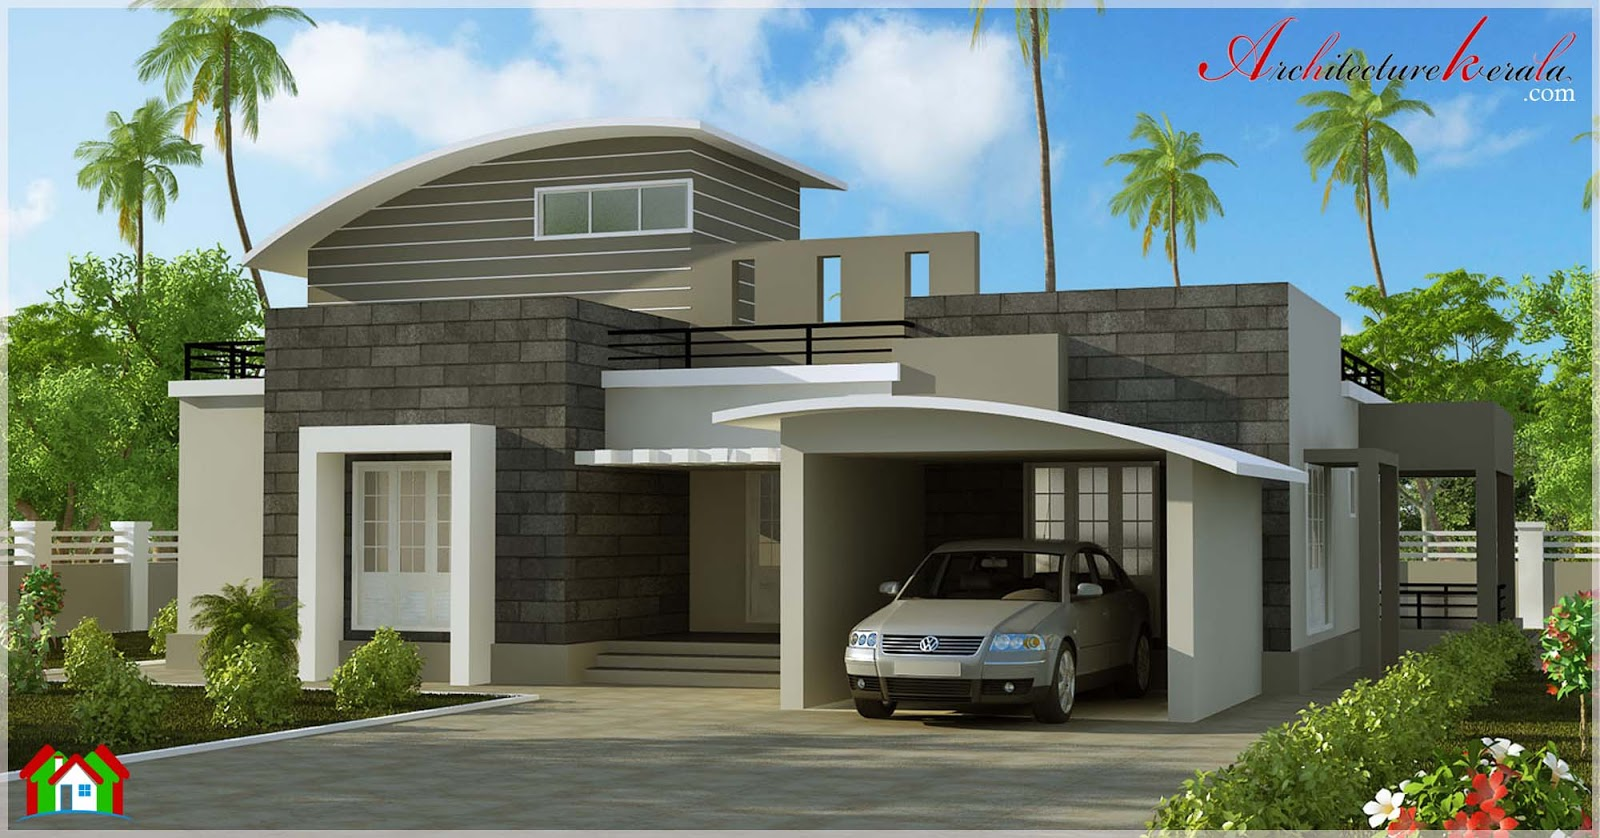 Contemporary style villa elevation architecture kerala for Kerala home designs contemporary